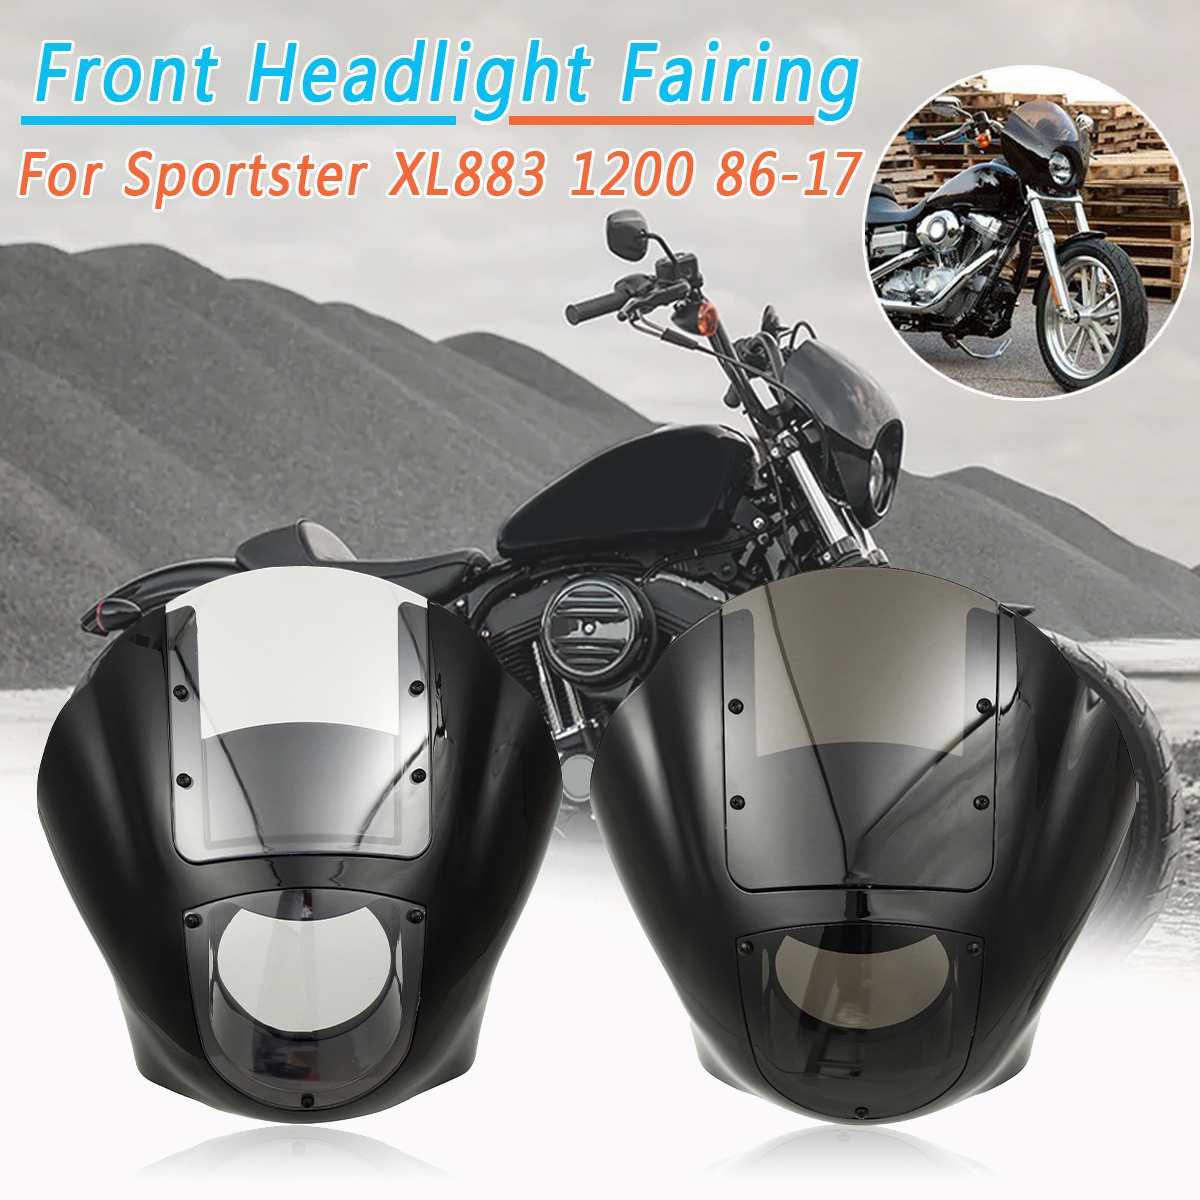 Clear/SmokeMotorcycle Headlight Headlamp Full Fairing Kits Windscreen Windshield Cover For Sportster XL883 1200 1986-2017